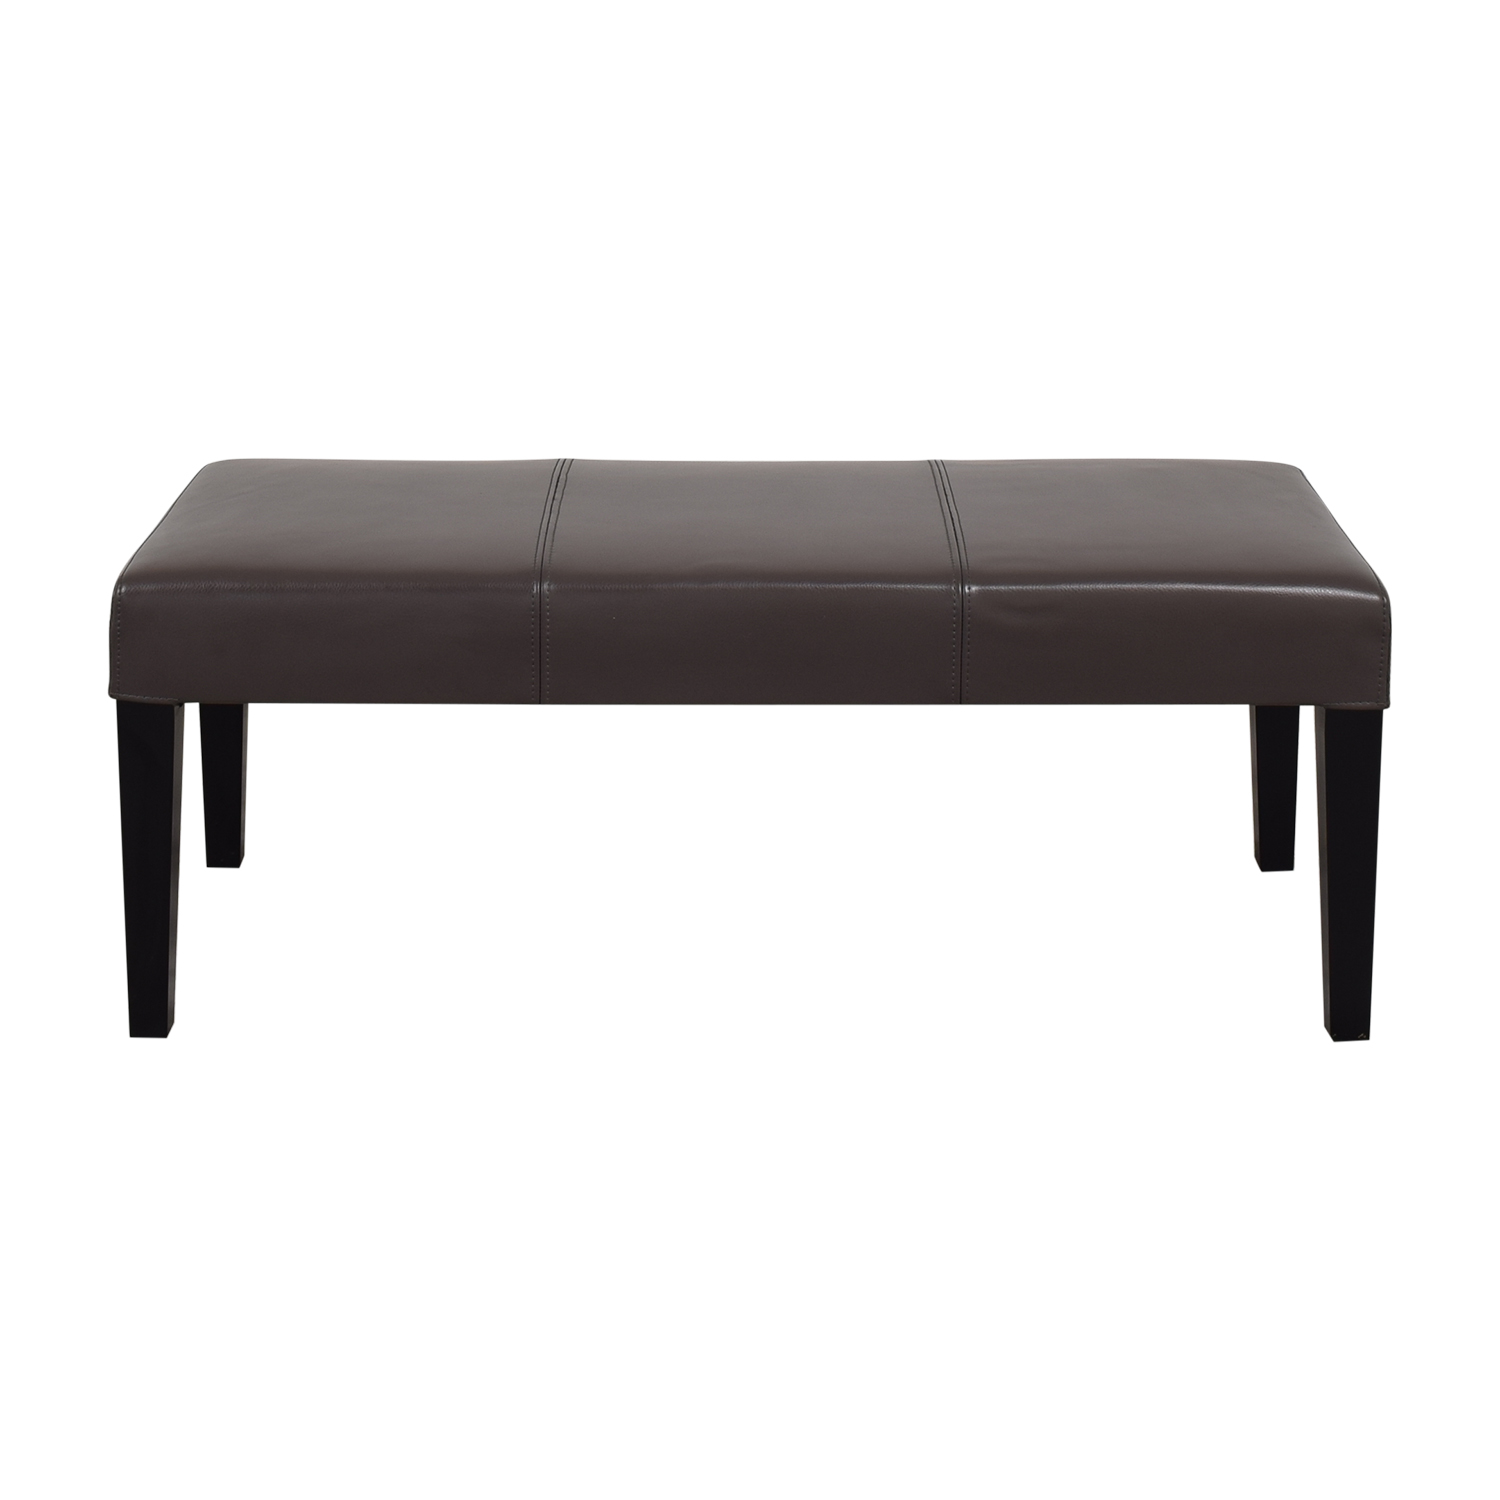 Crate & Barrel Lowe Backless Bench Crate & Barrel